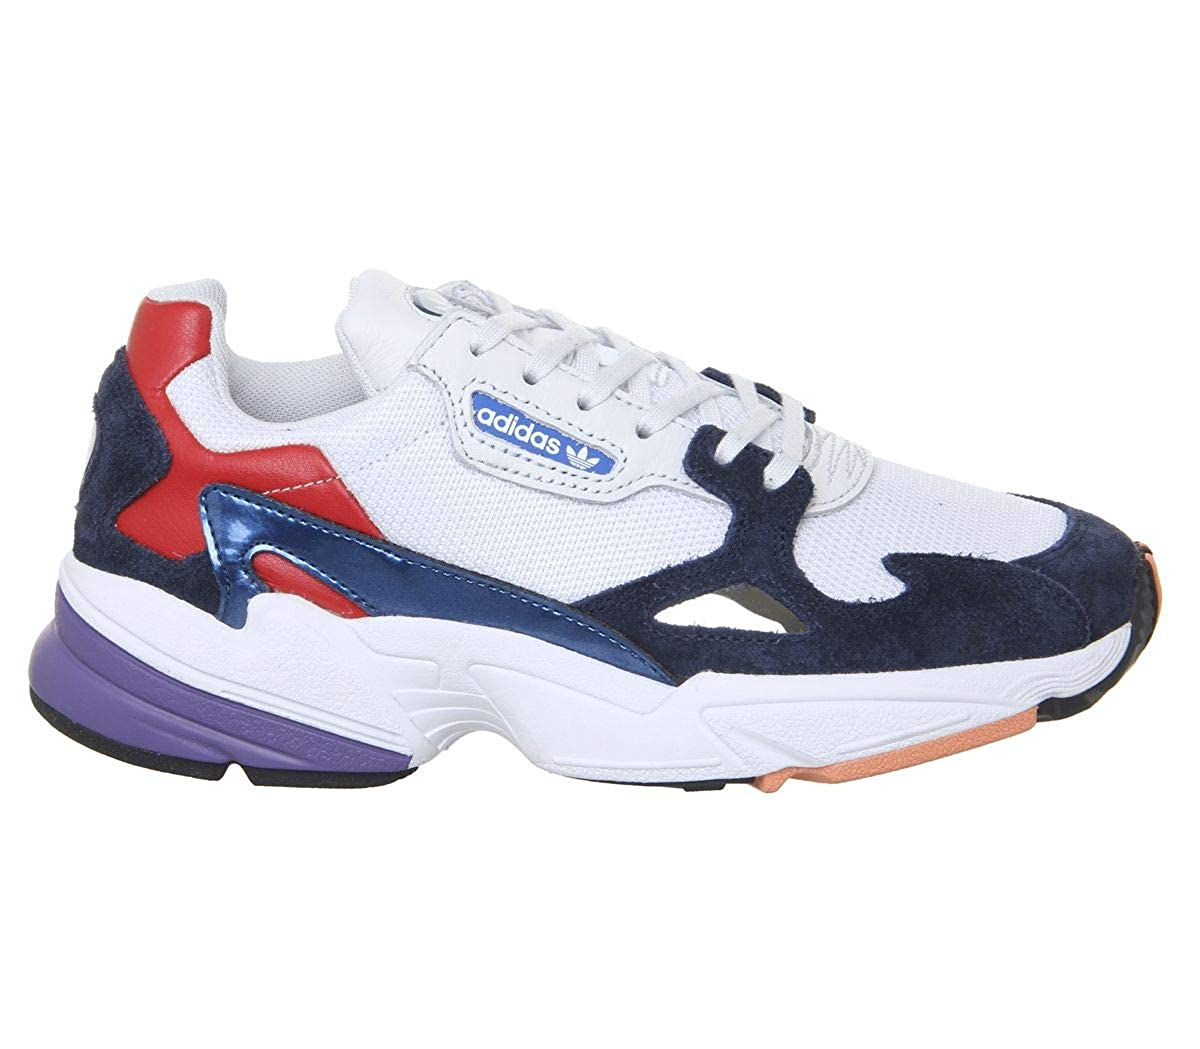 adidas Originals Falcon Shoes 7.5 B(M) US Women 6.5 D(M) US Crystal White Collegiate Navy Crystal White